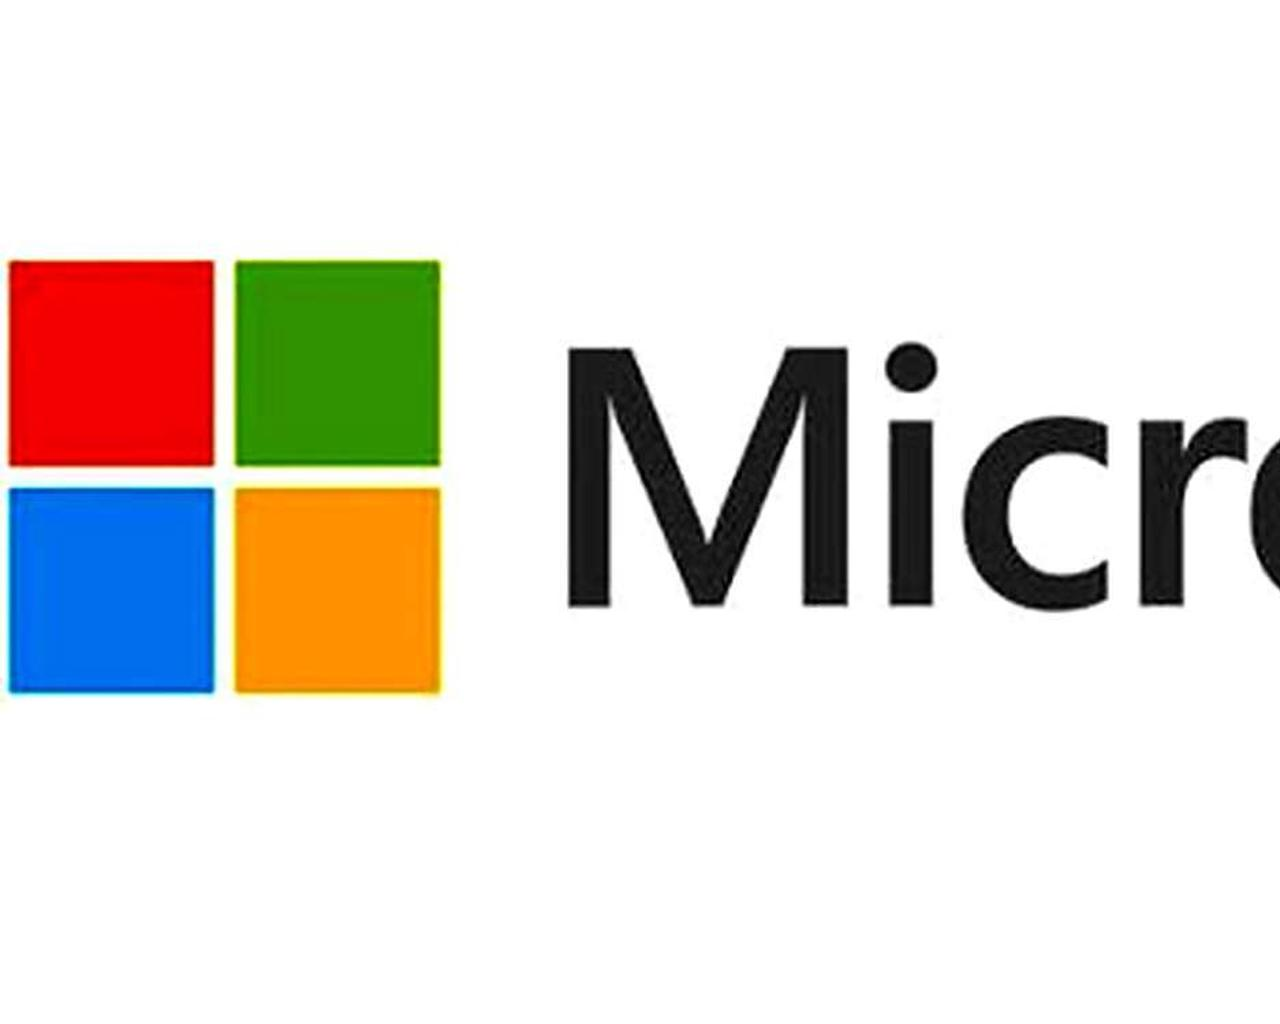 Delhi Man Delets 1,200 Microsoft User Accounts in the US, Arrested for 2 Years